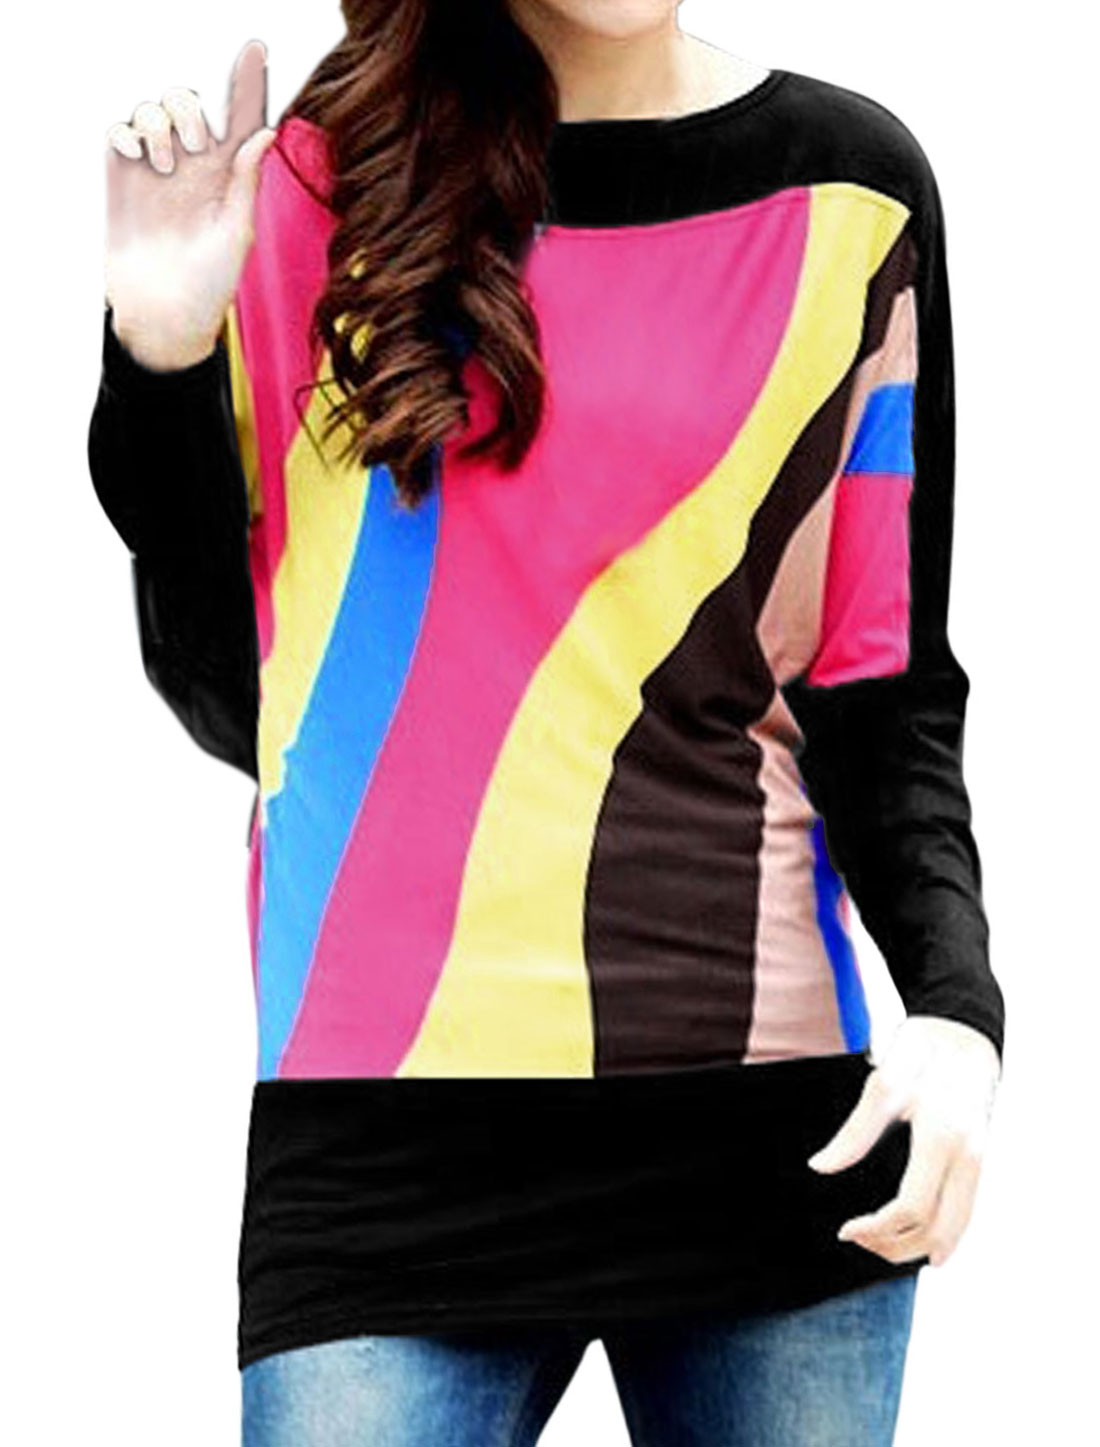 Lady Stripes Pattern Panel Color Block Leisure Top Fuchsia Black S